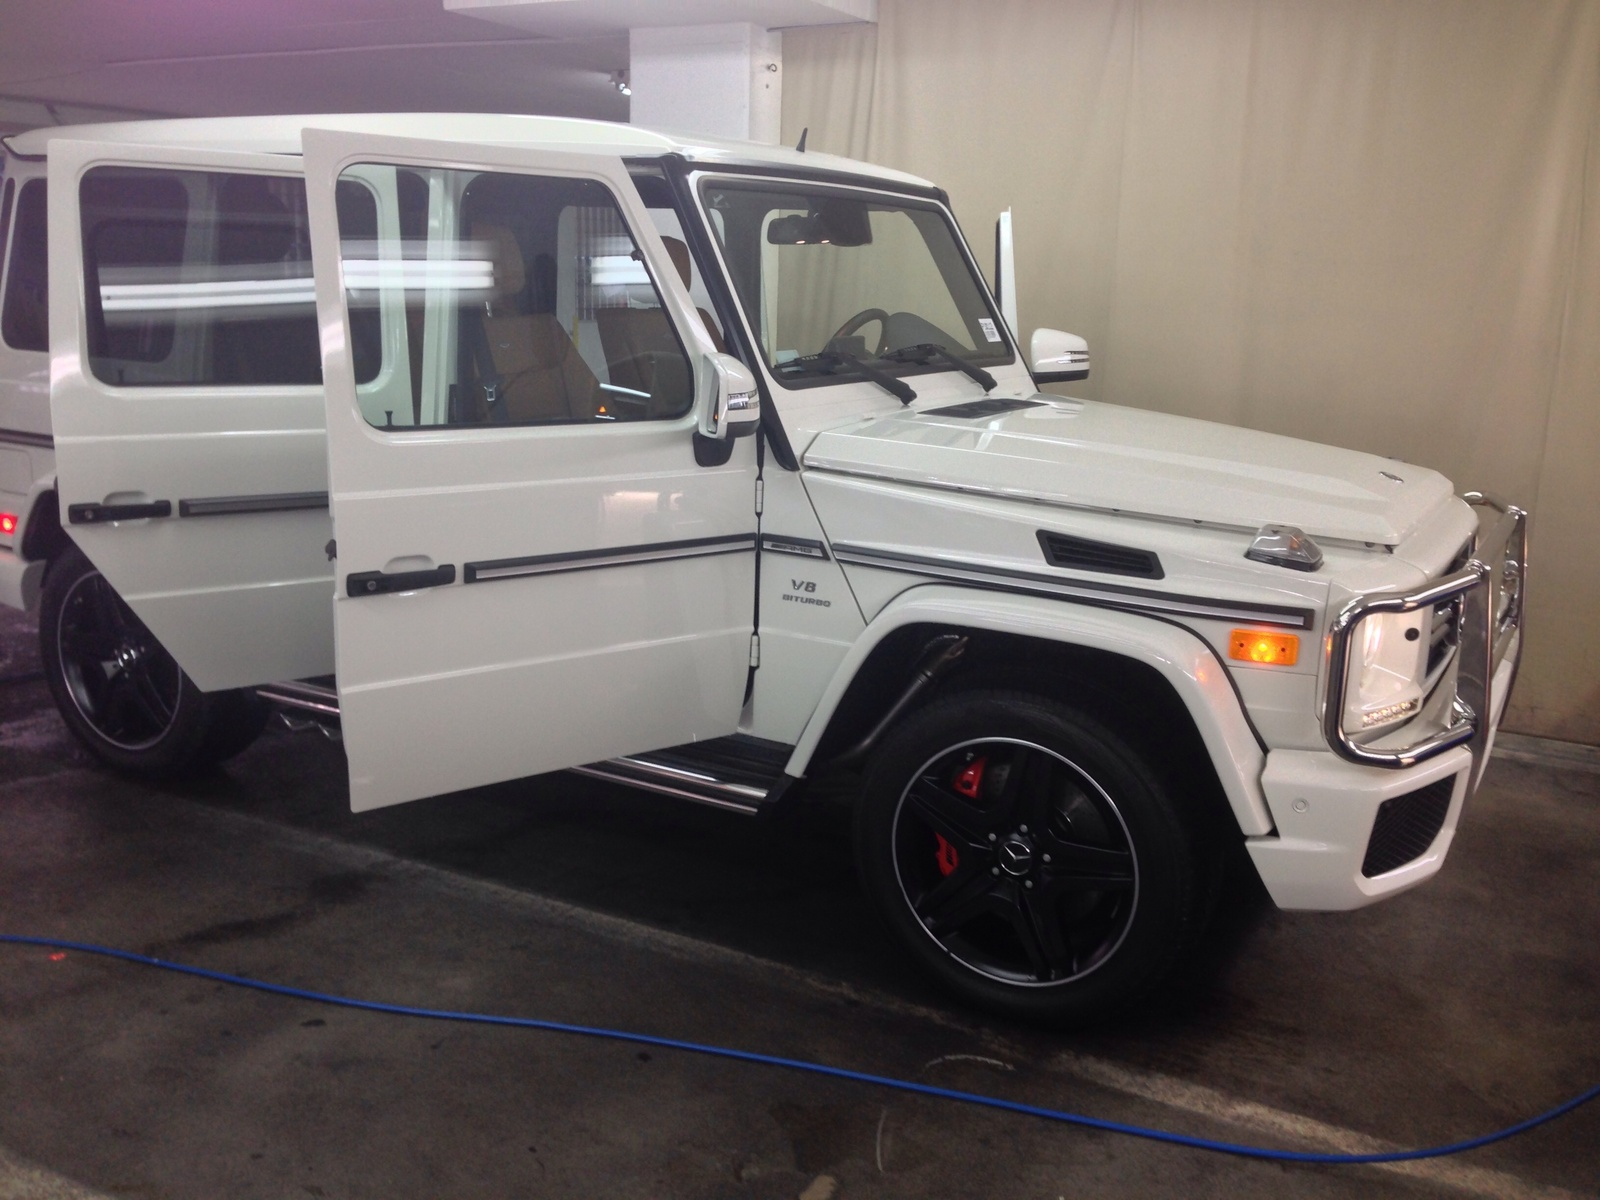 2013 mercedes benz g class pictures cargurus for 2013 mercedes benz g63 amg price